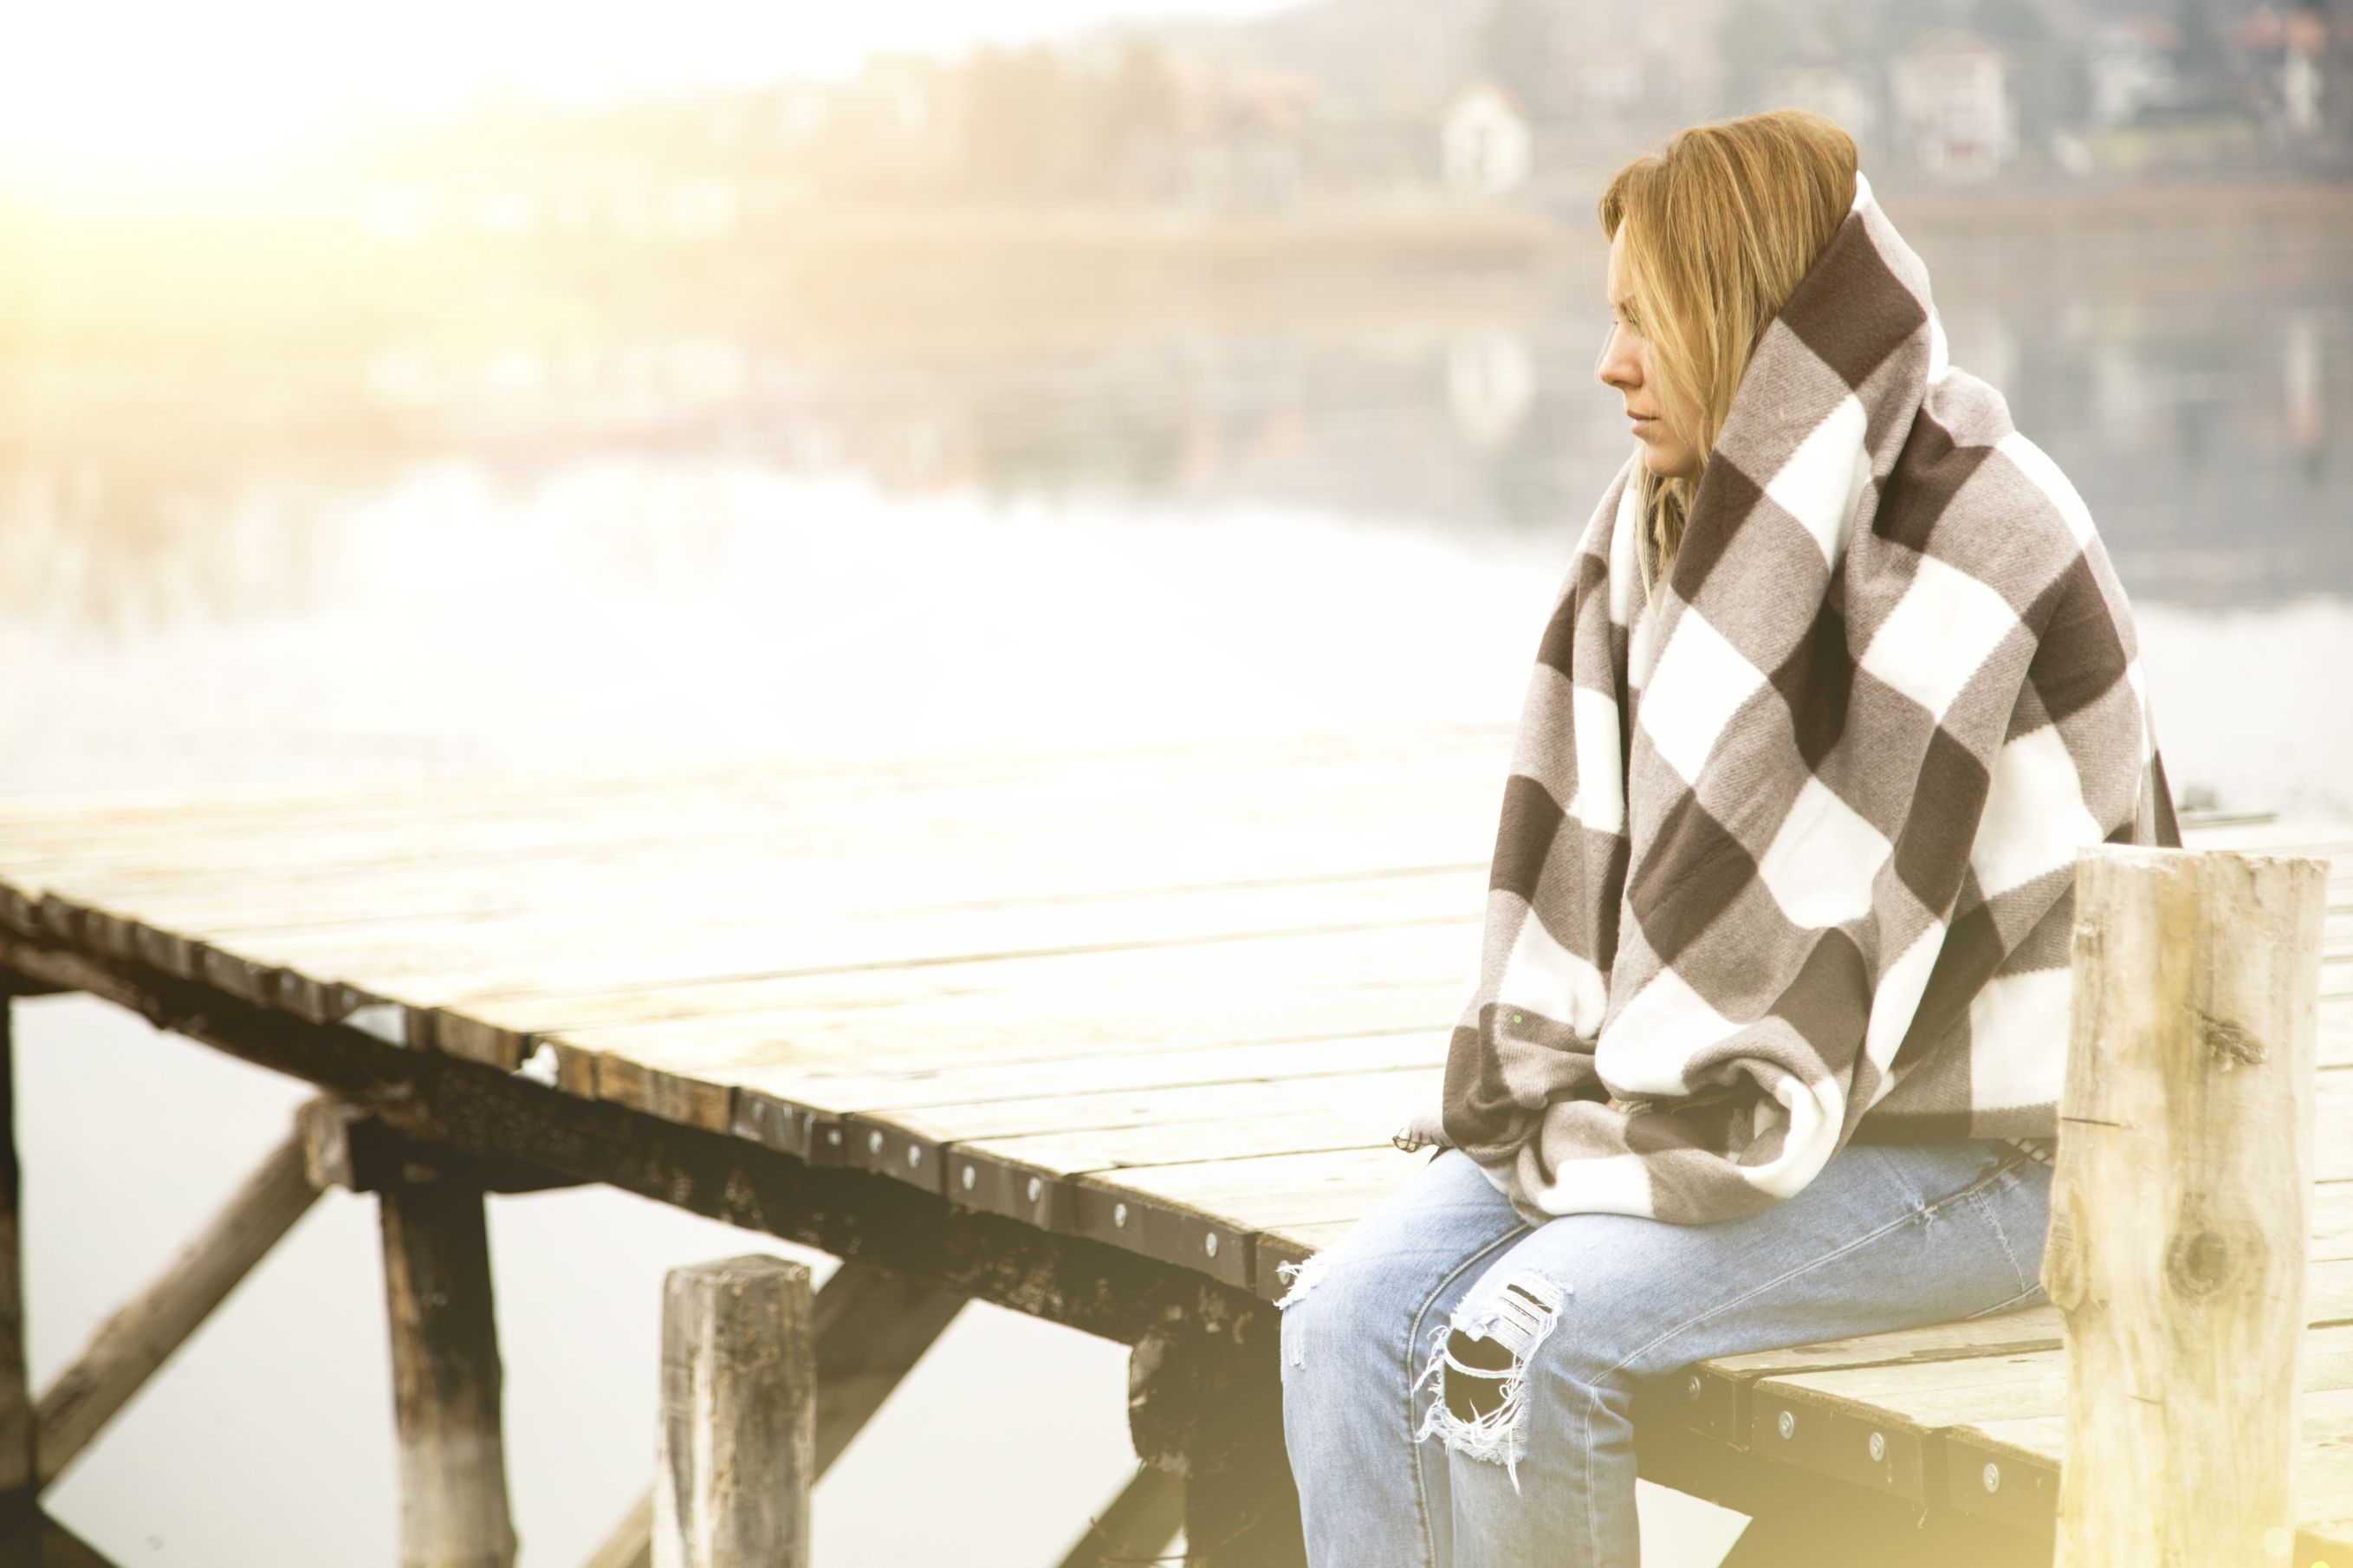 A young woman feels sadness as she sits on a dock